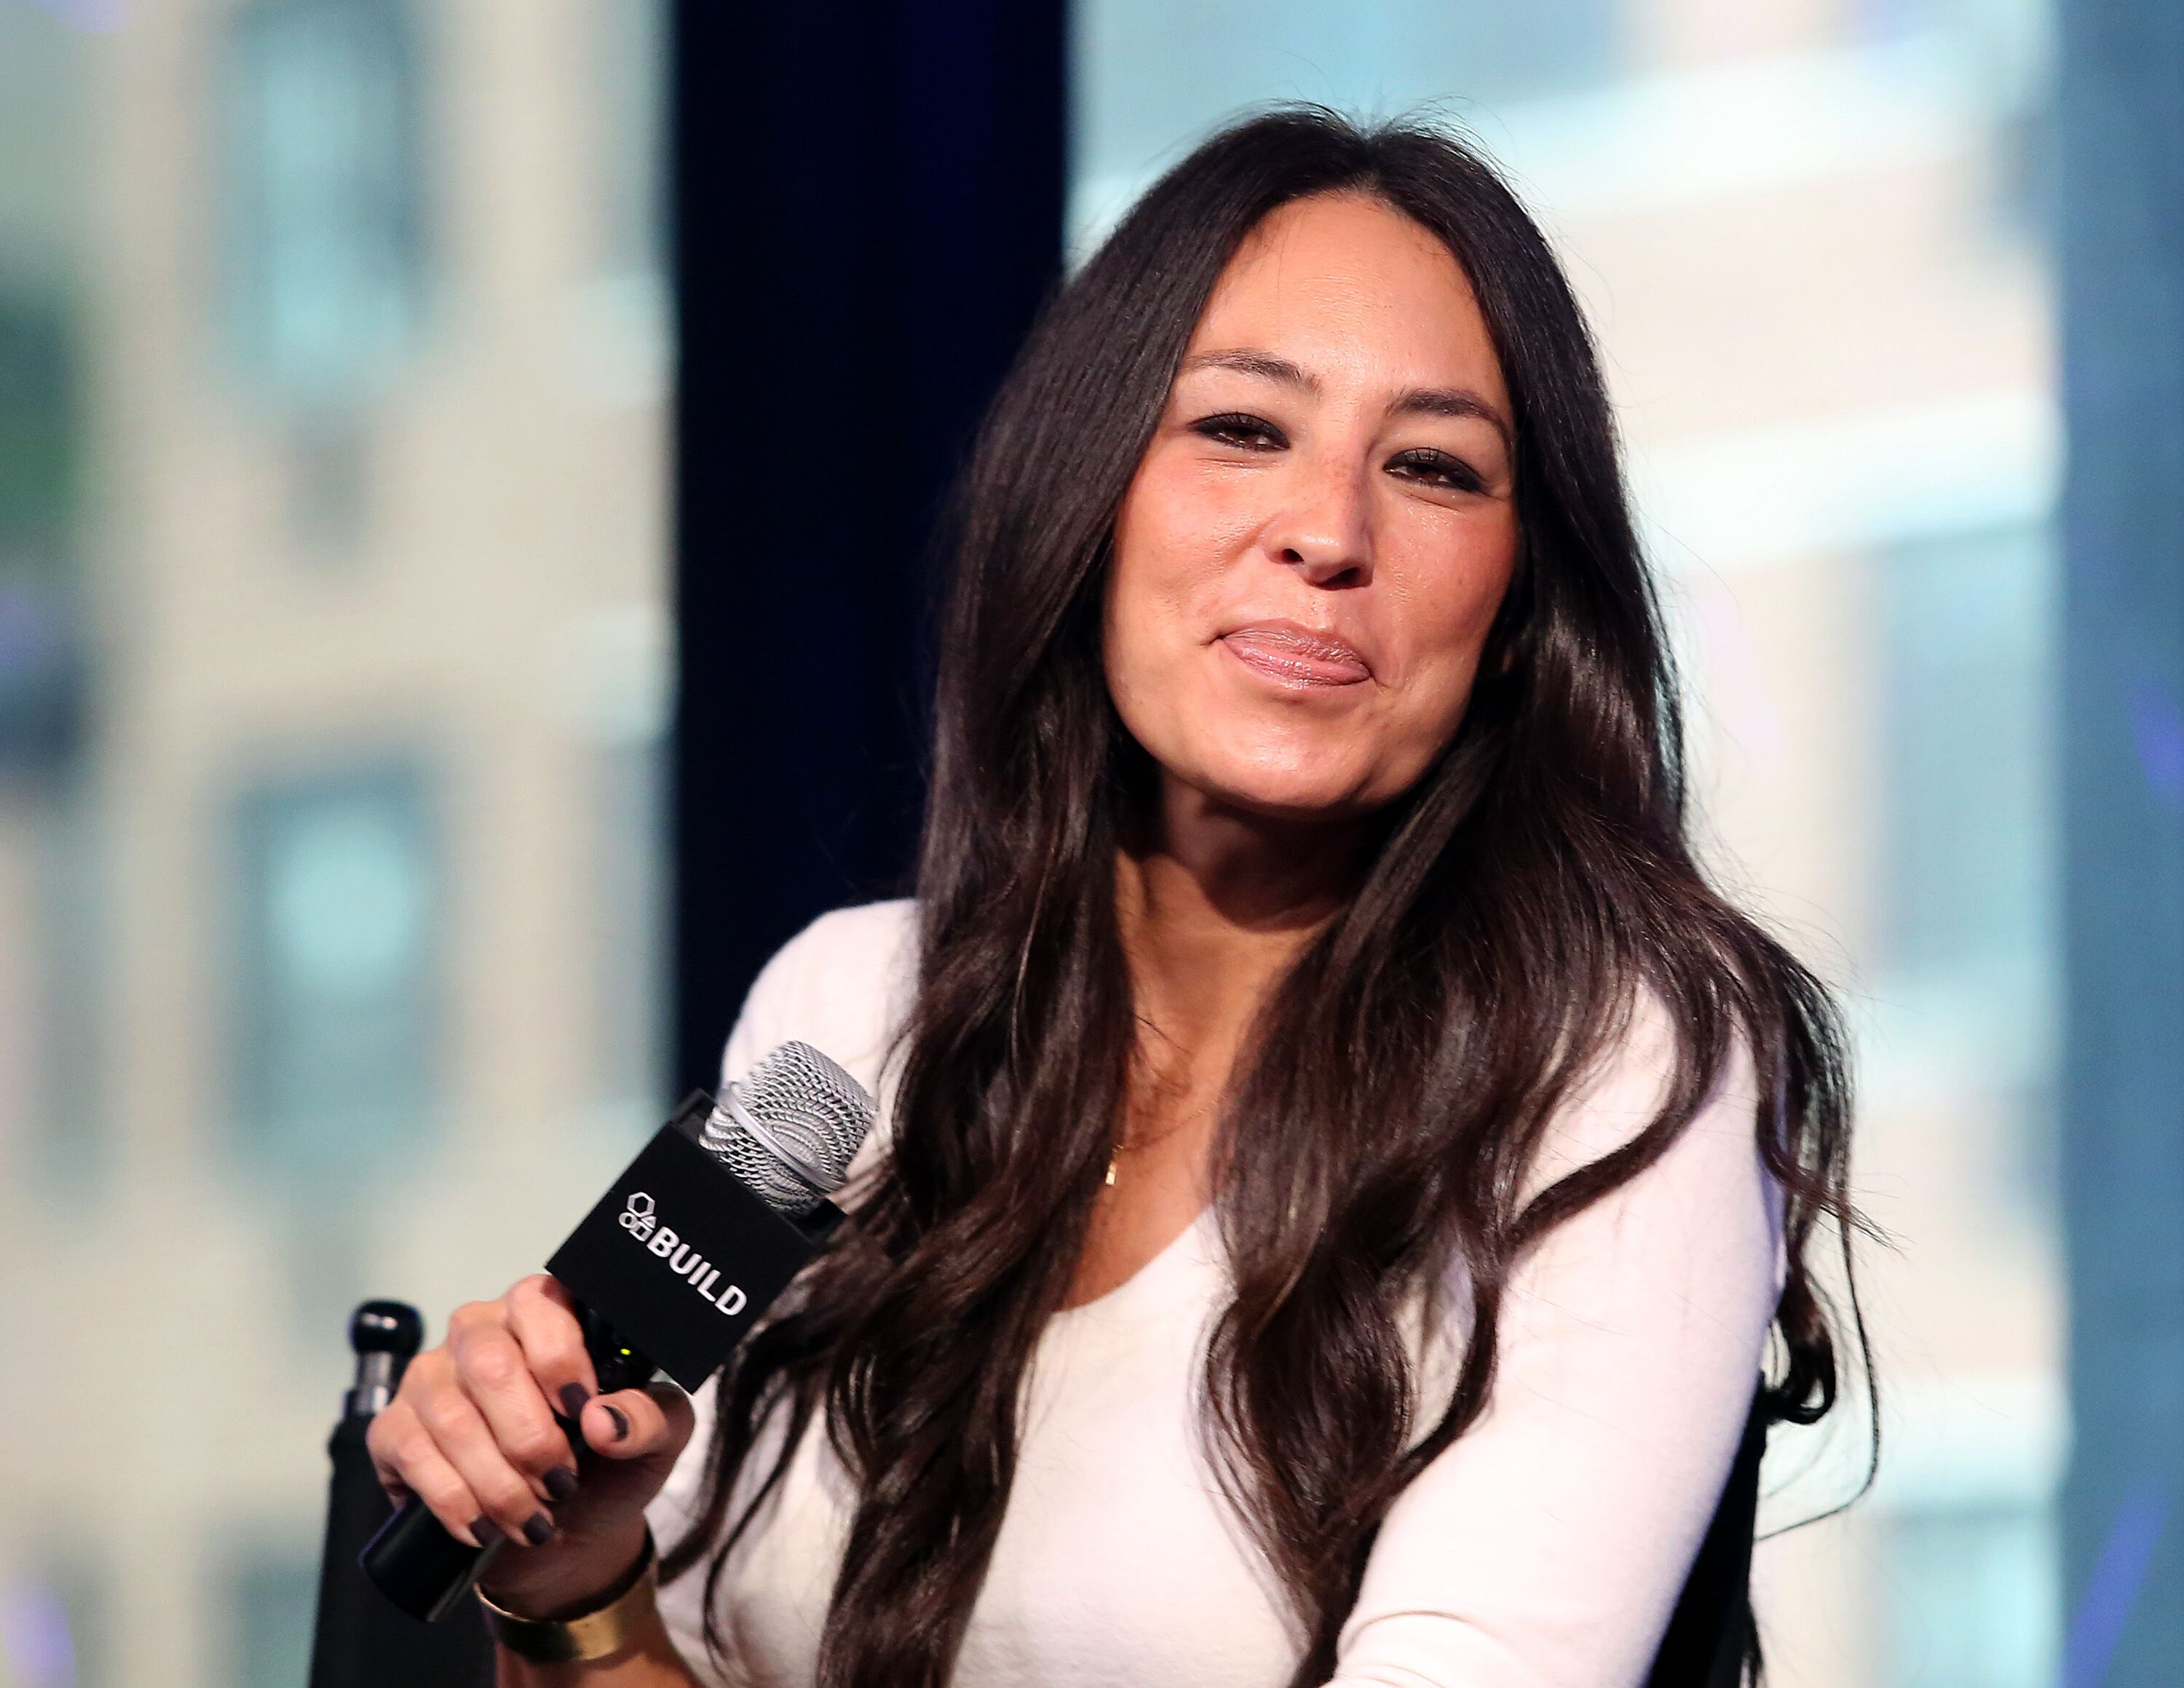 """Designer Joanna Gaines appear to promote """"The Magnolia Story"""" during the AOL BUILD Series at AOL HQ on October 19, 2016 